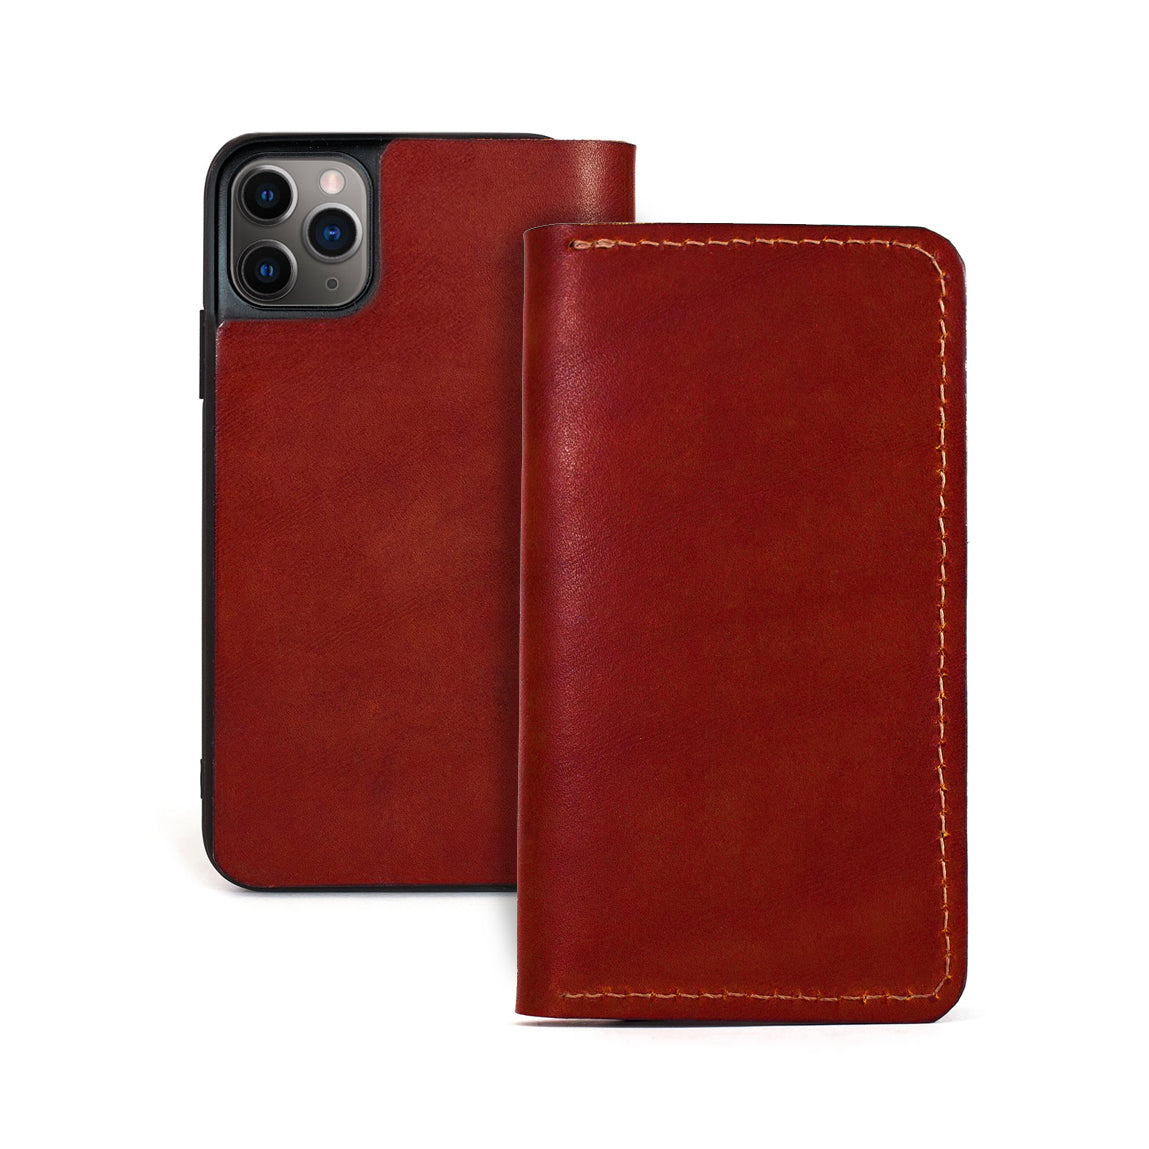 iphone 11pro, iphone 11, pro max, iphone leather case, iphone wallet, new iphone, leather iphone 11pro case, iphone xr, iphone xs max, iphone x